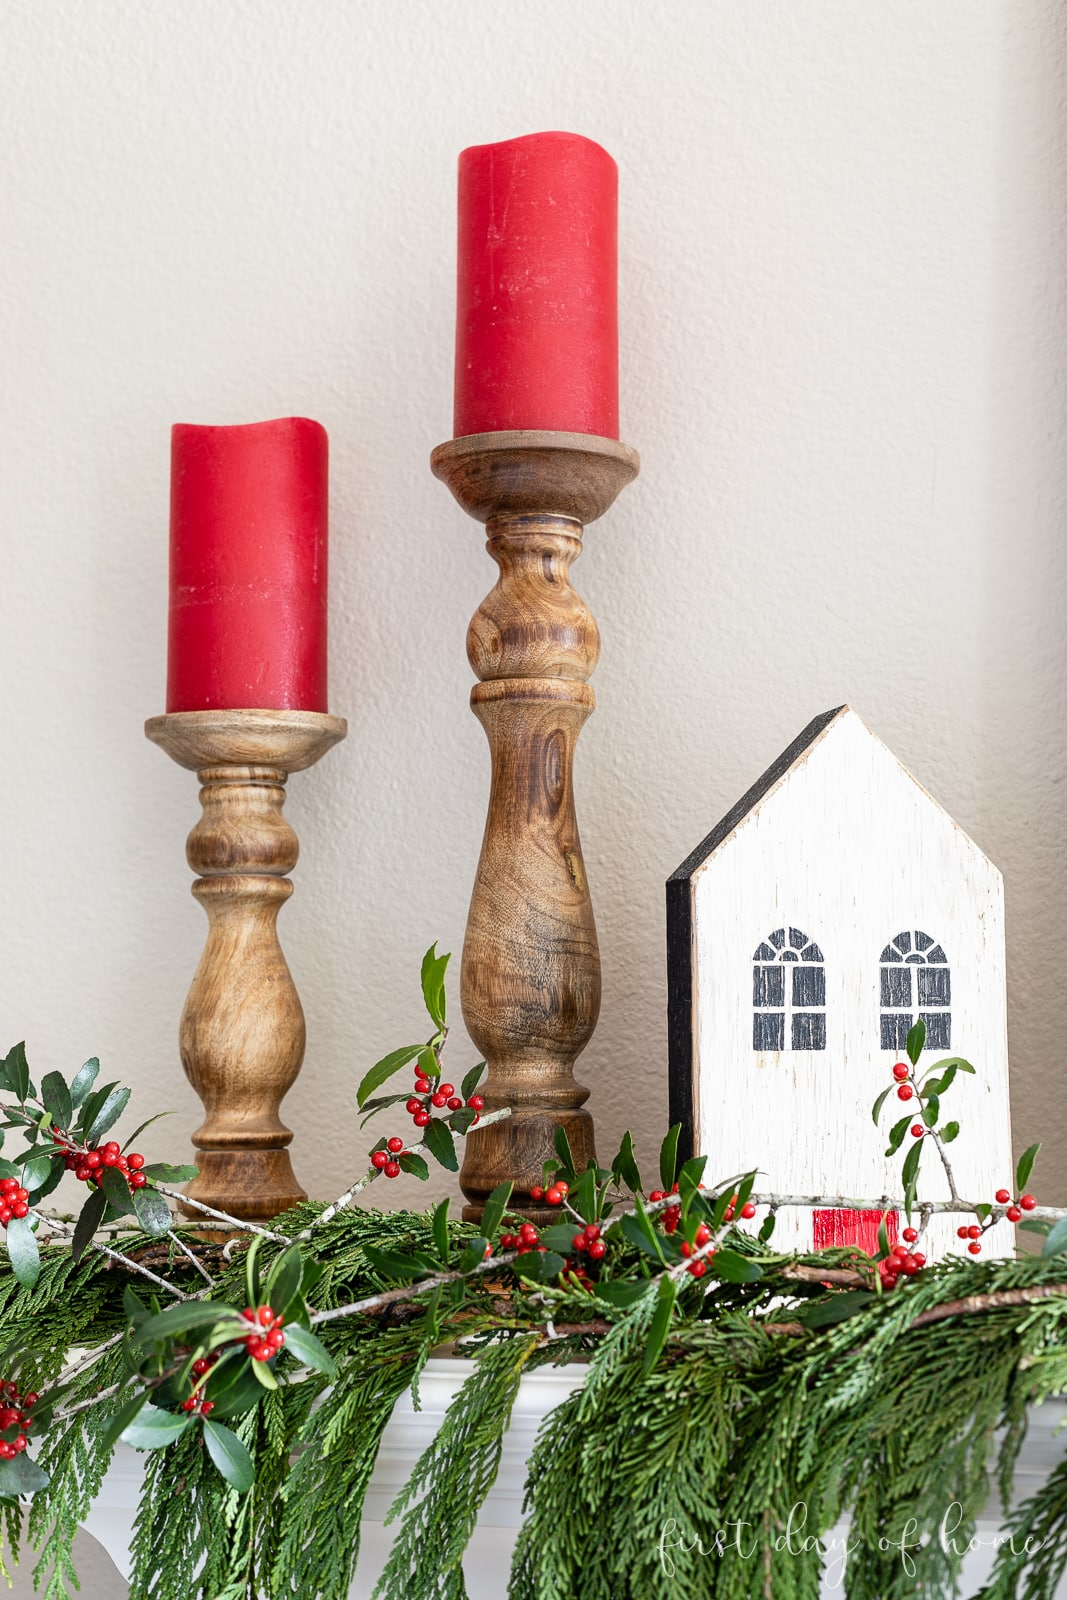 Two wooden candlesticks with red LED candles and a wooden house on mantel with real cedar garland